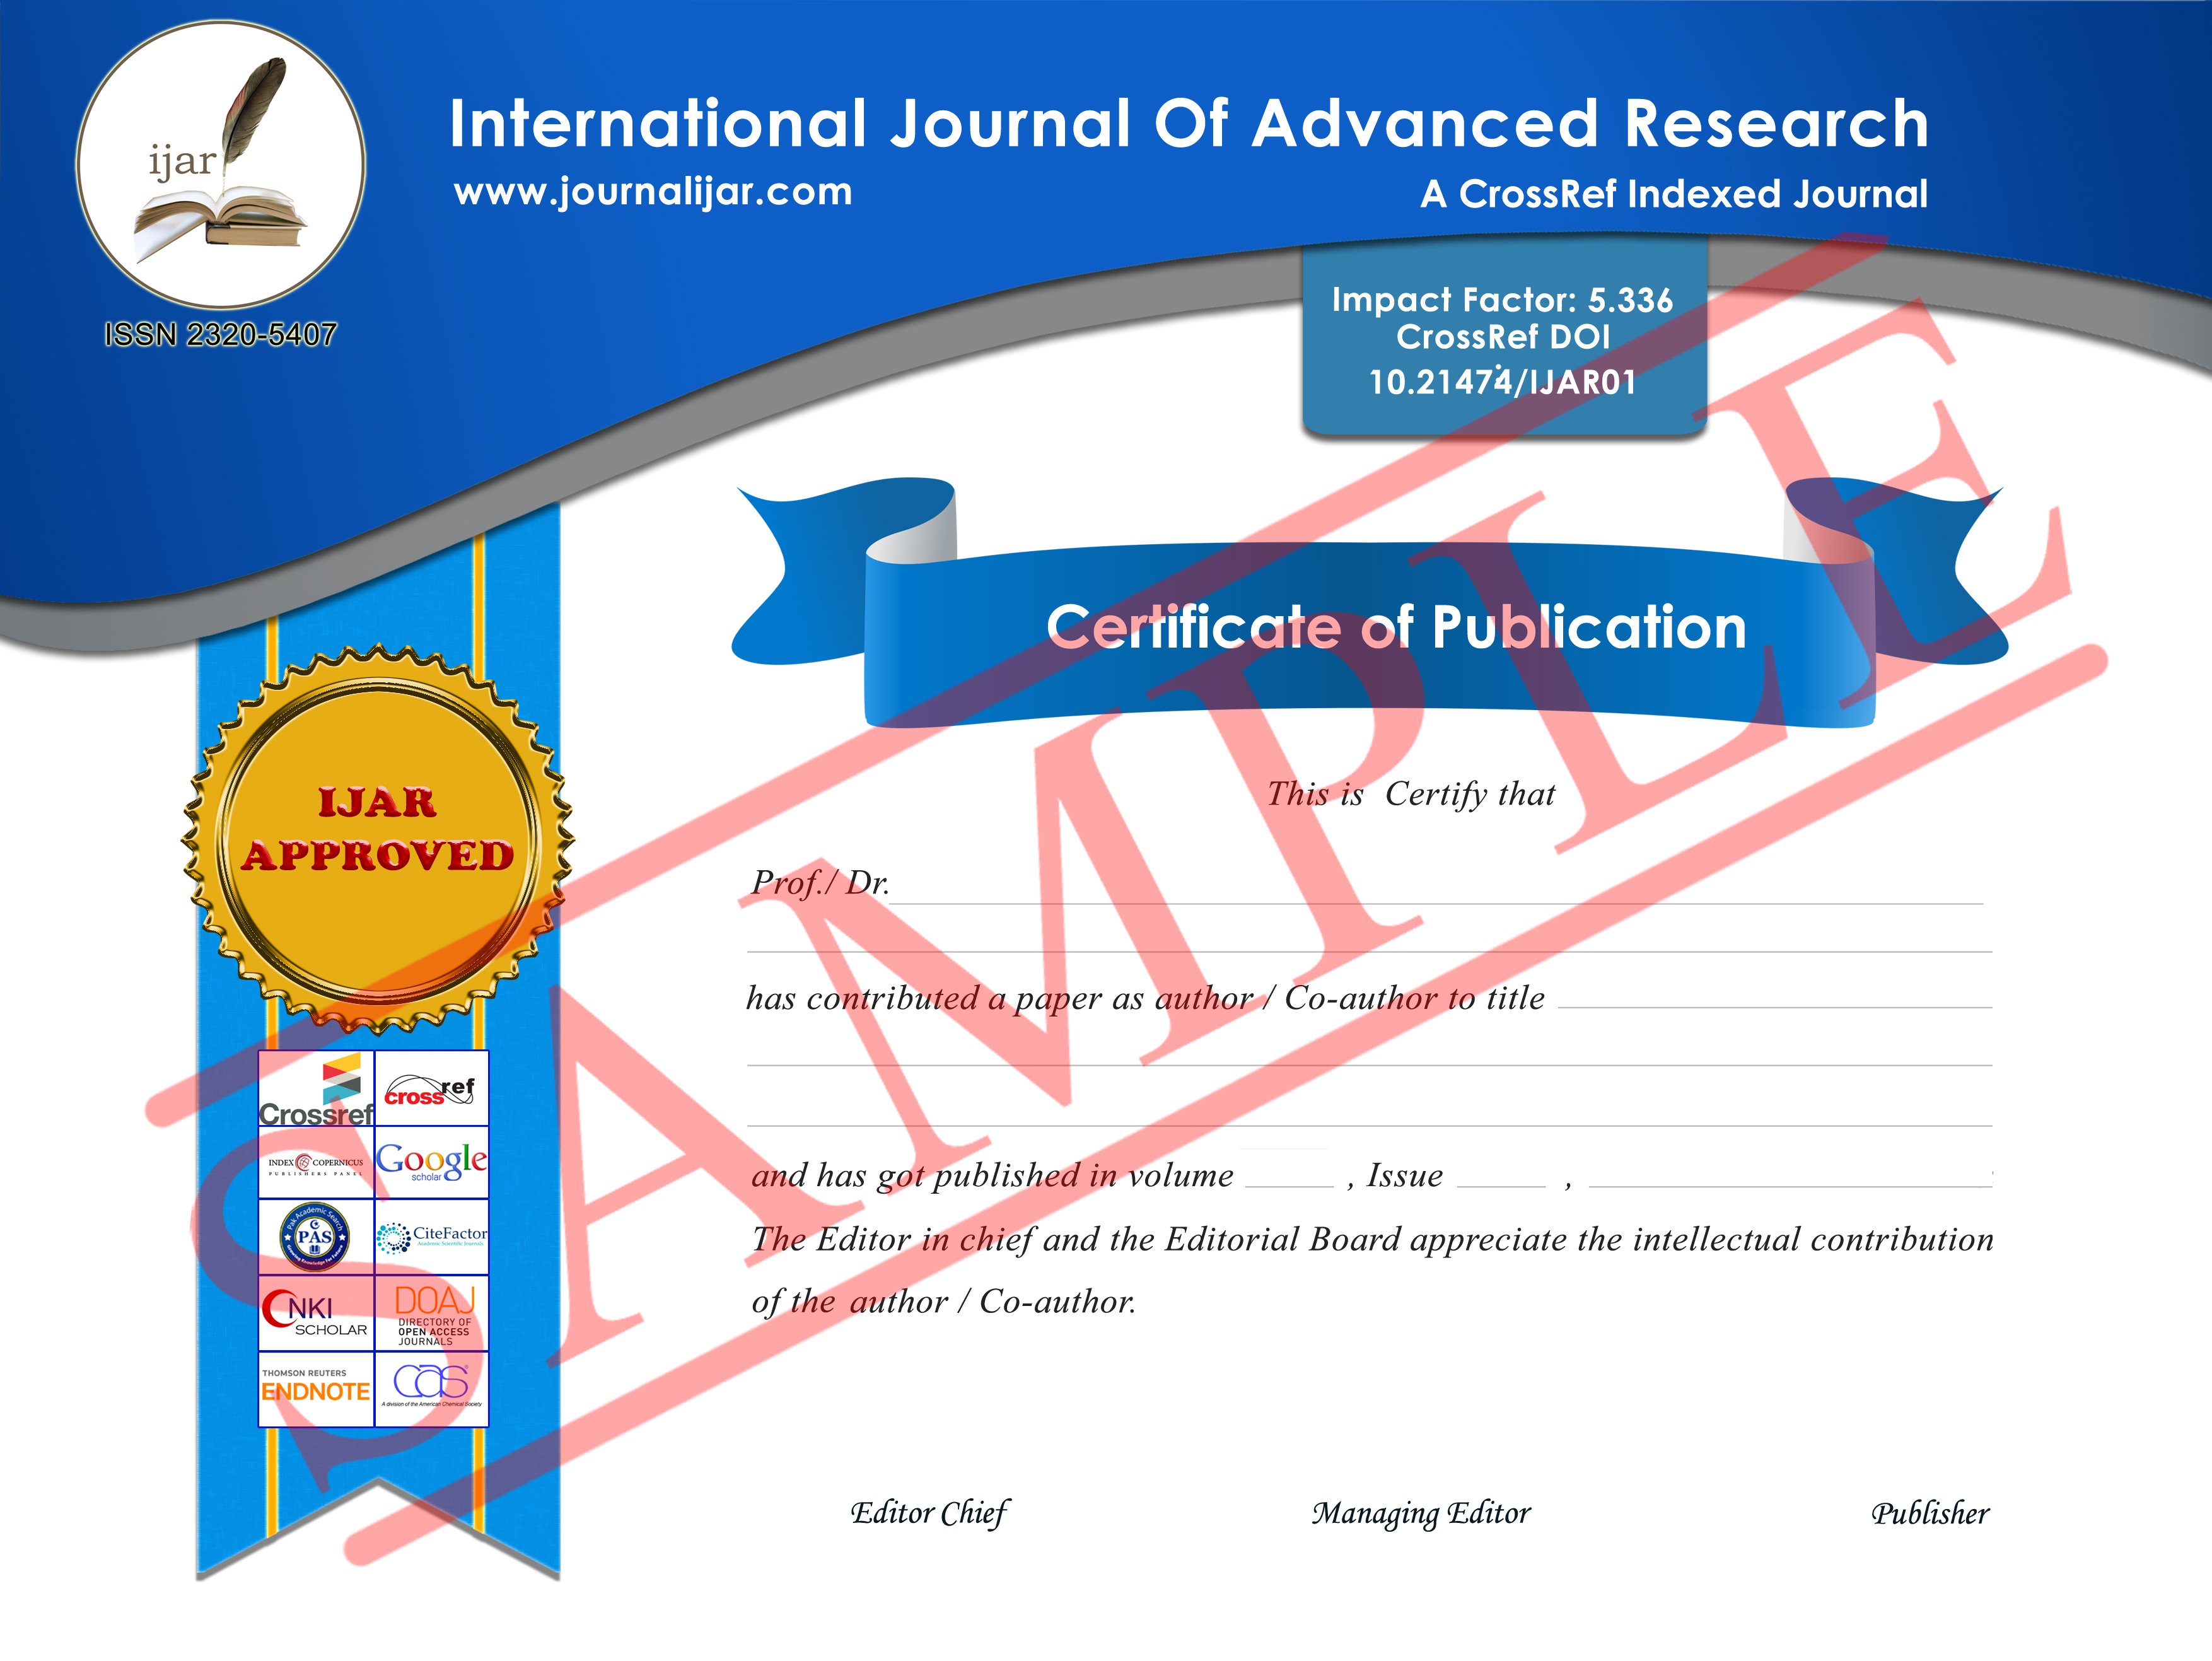 013 Research Paper Certificate Sample How To Publish In International Journal Free Unusual Pdf Full